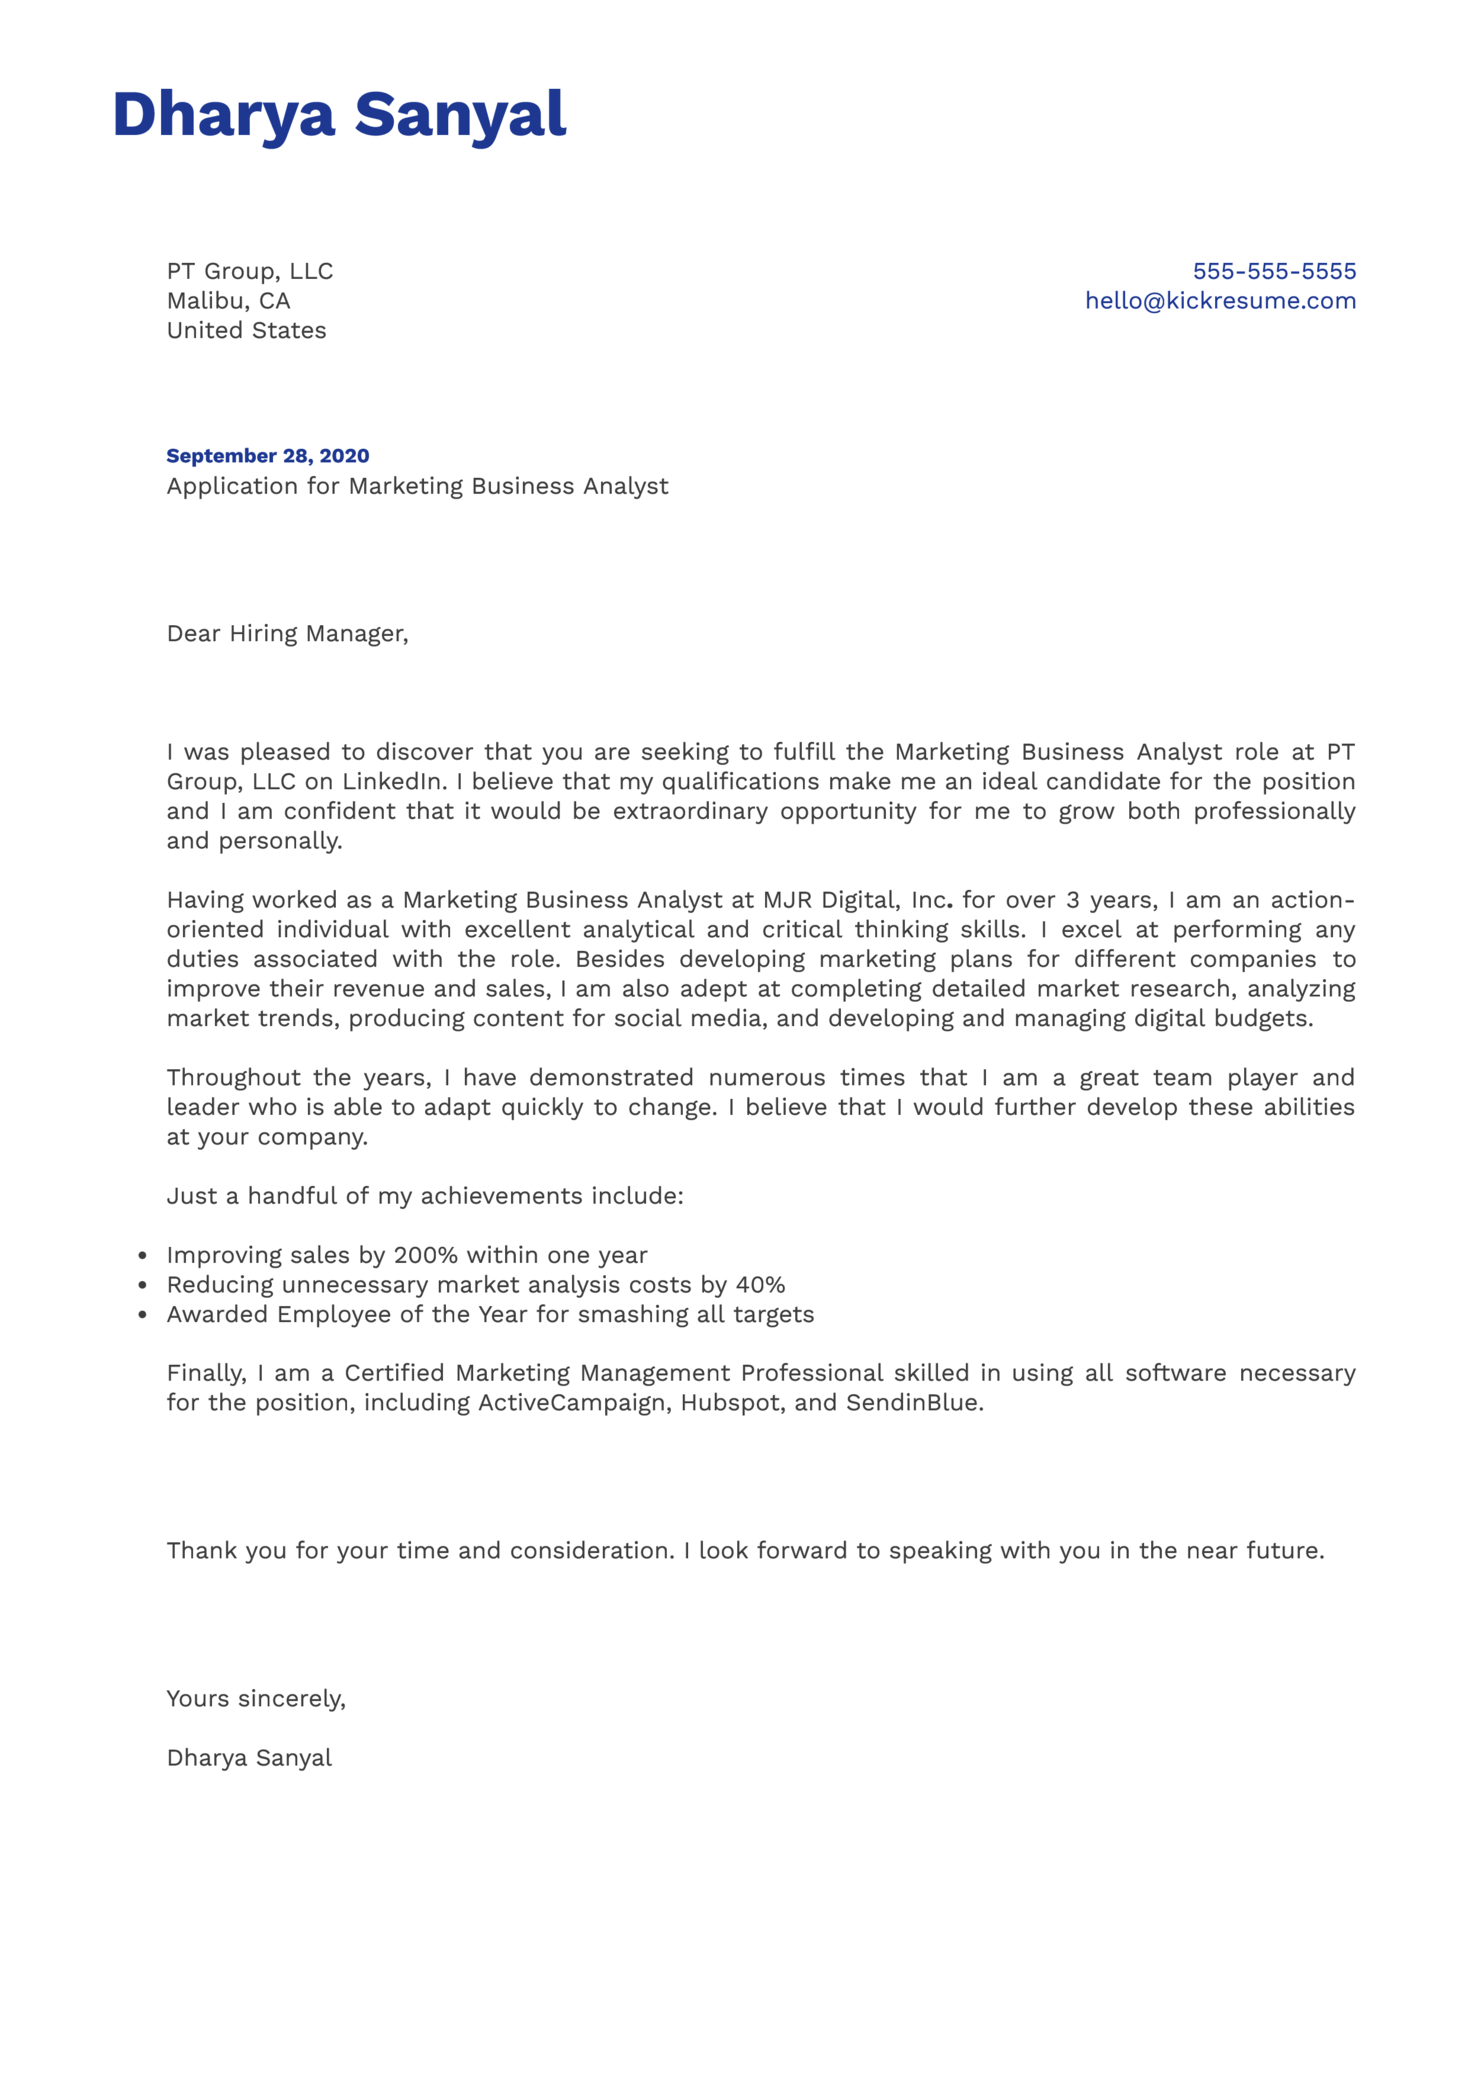 Marketing Business Analyst Cover Letter Example